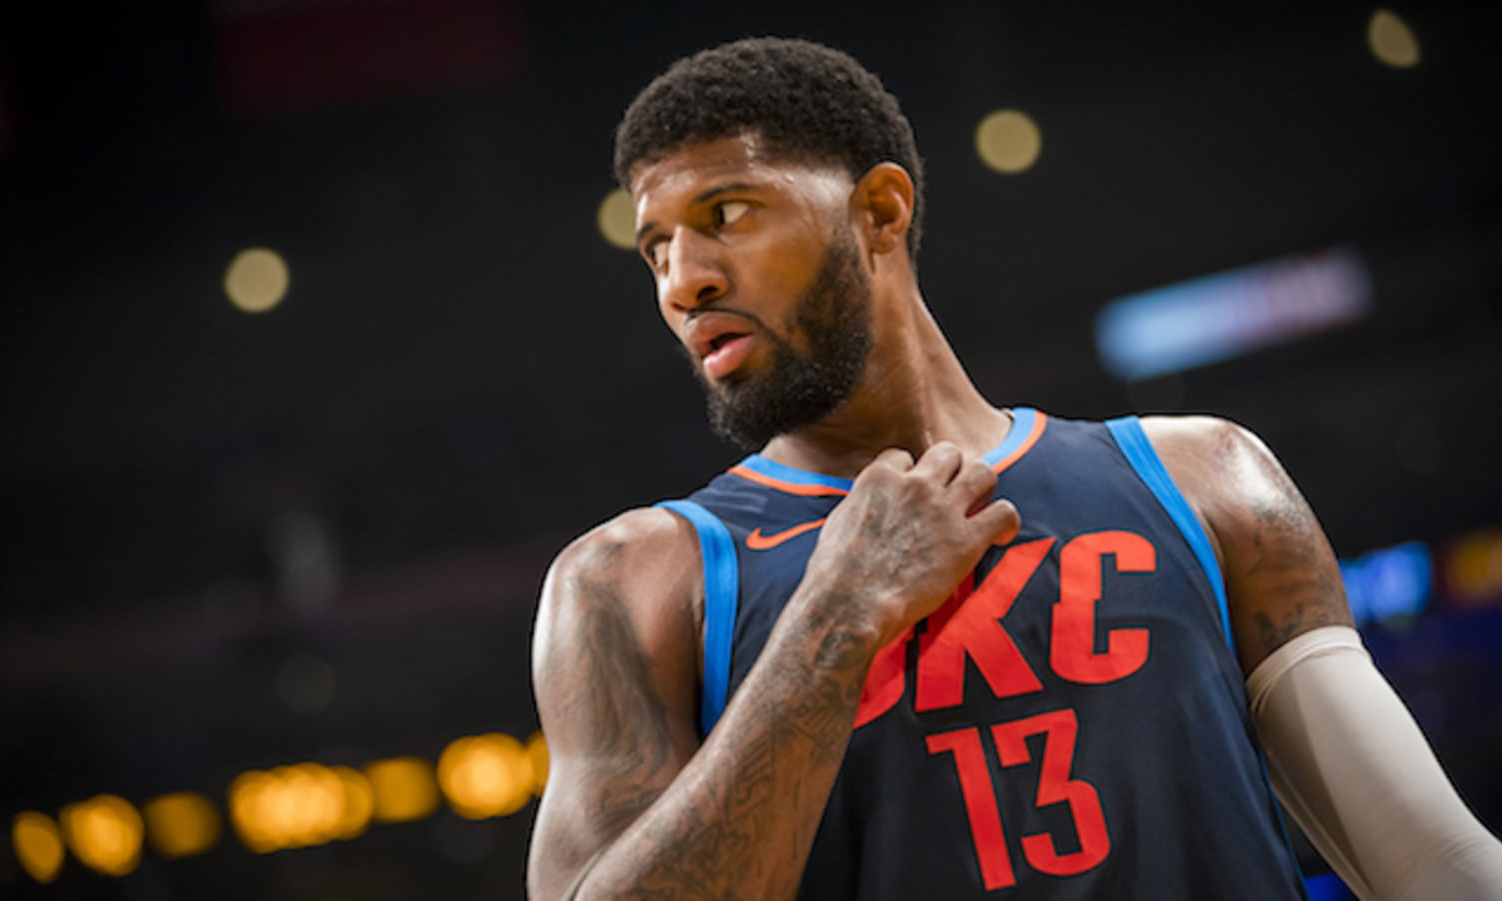 Paul George 本人首次回应 Zion Williamson 事件